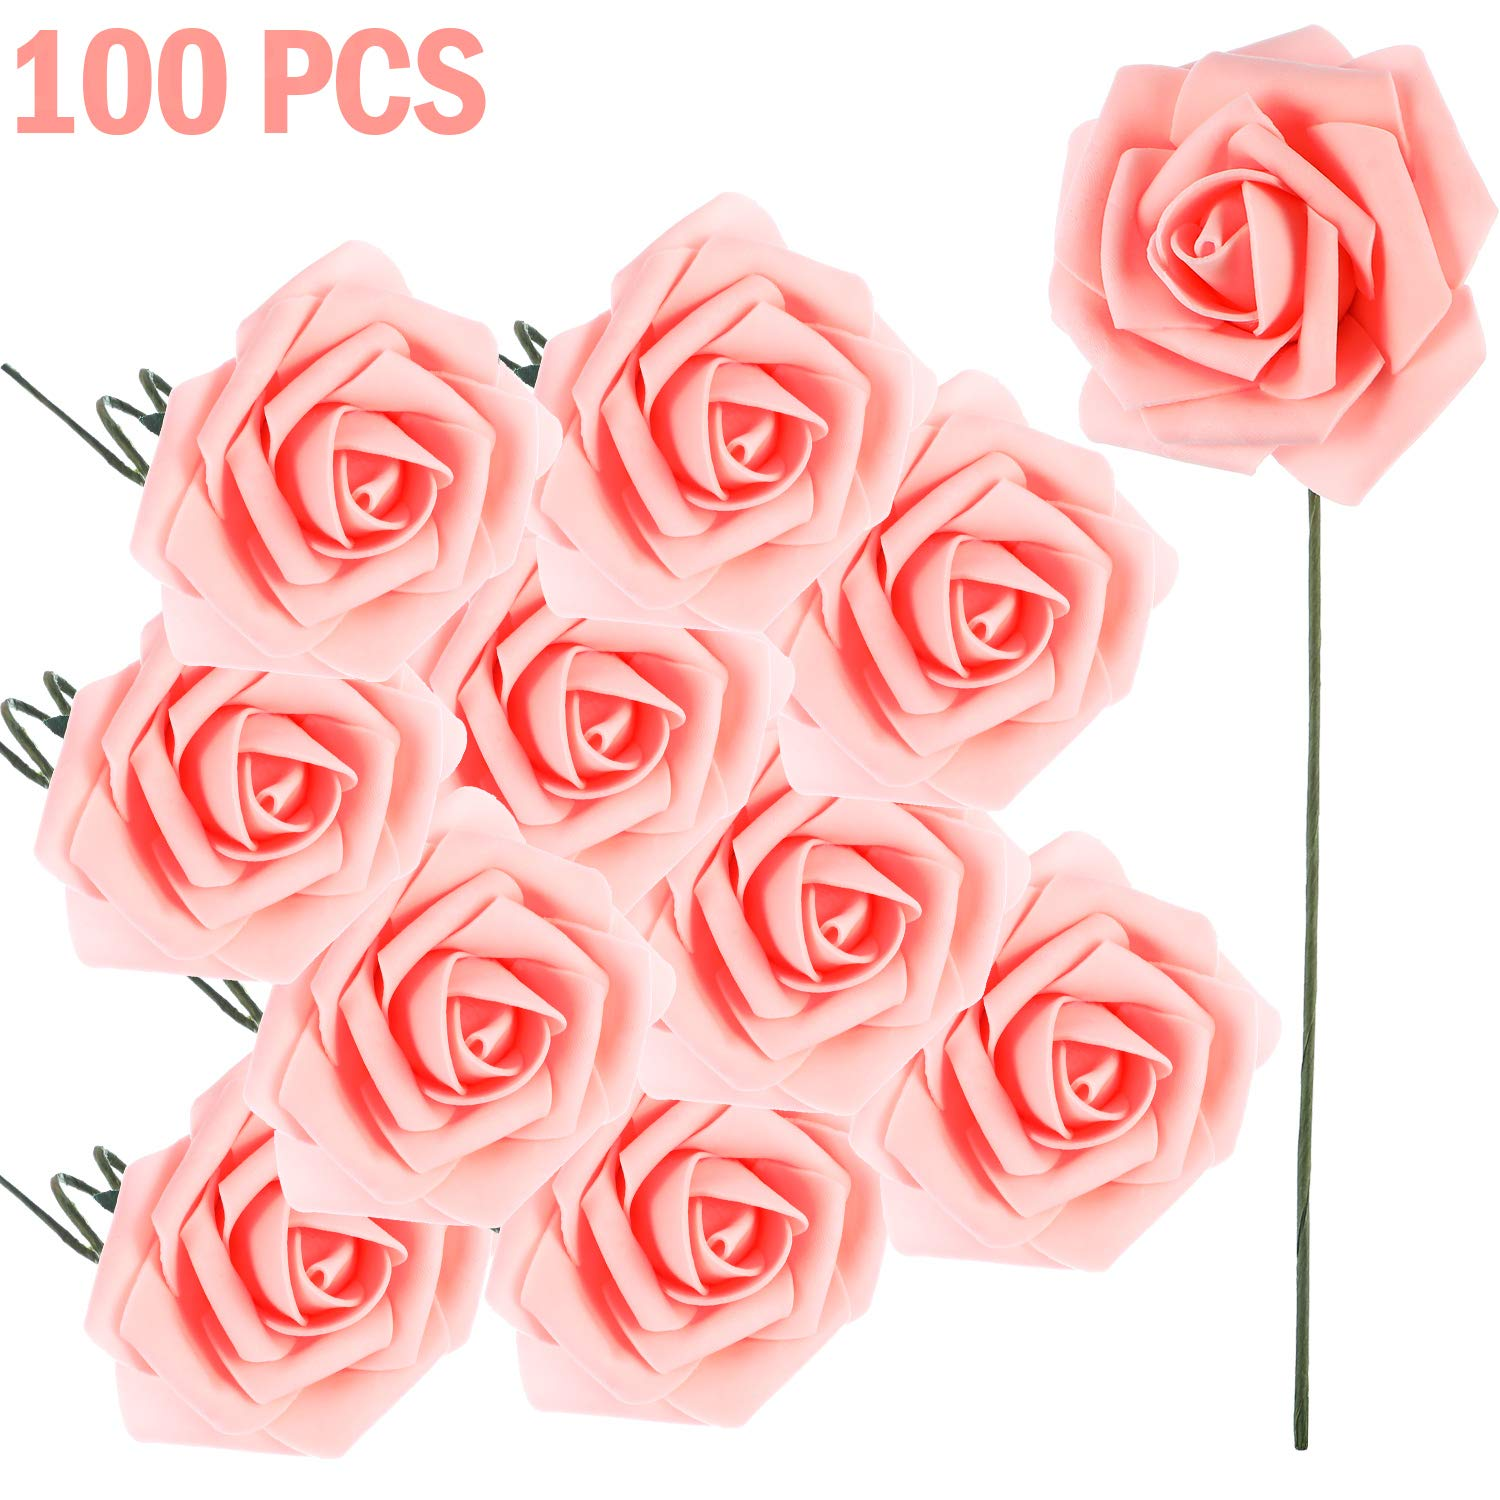 Poen-100-Pieces-Artificial-Flowers-Blush-Roses-Foam-Rose-with-Stem-for-DIY-Wedding-Bouquets-Centerpieces-Party-Baby-Shower-Home-Decorations